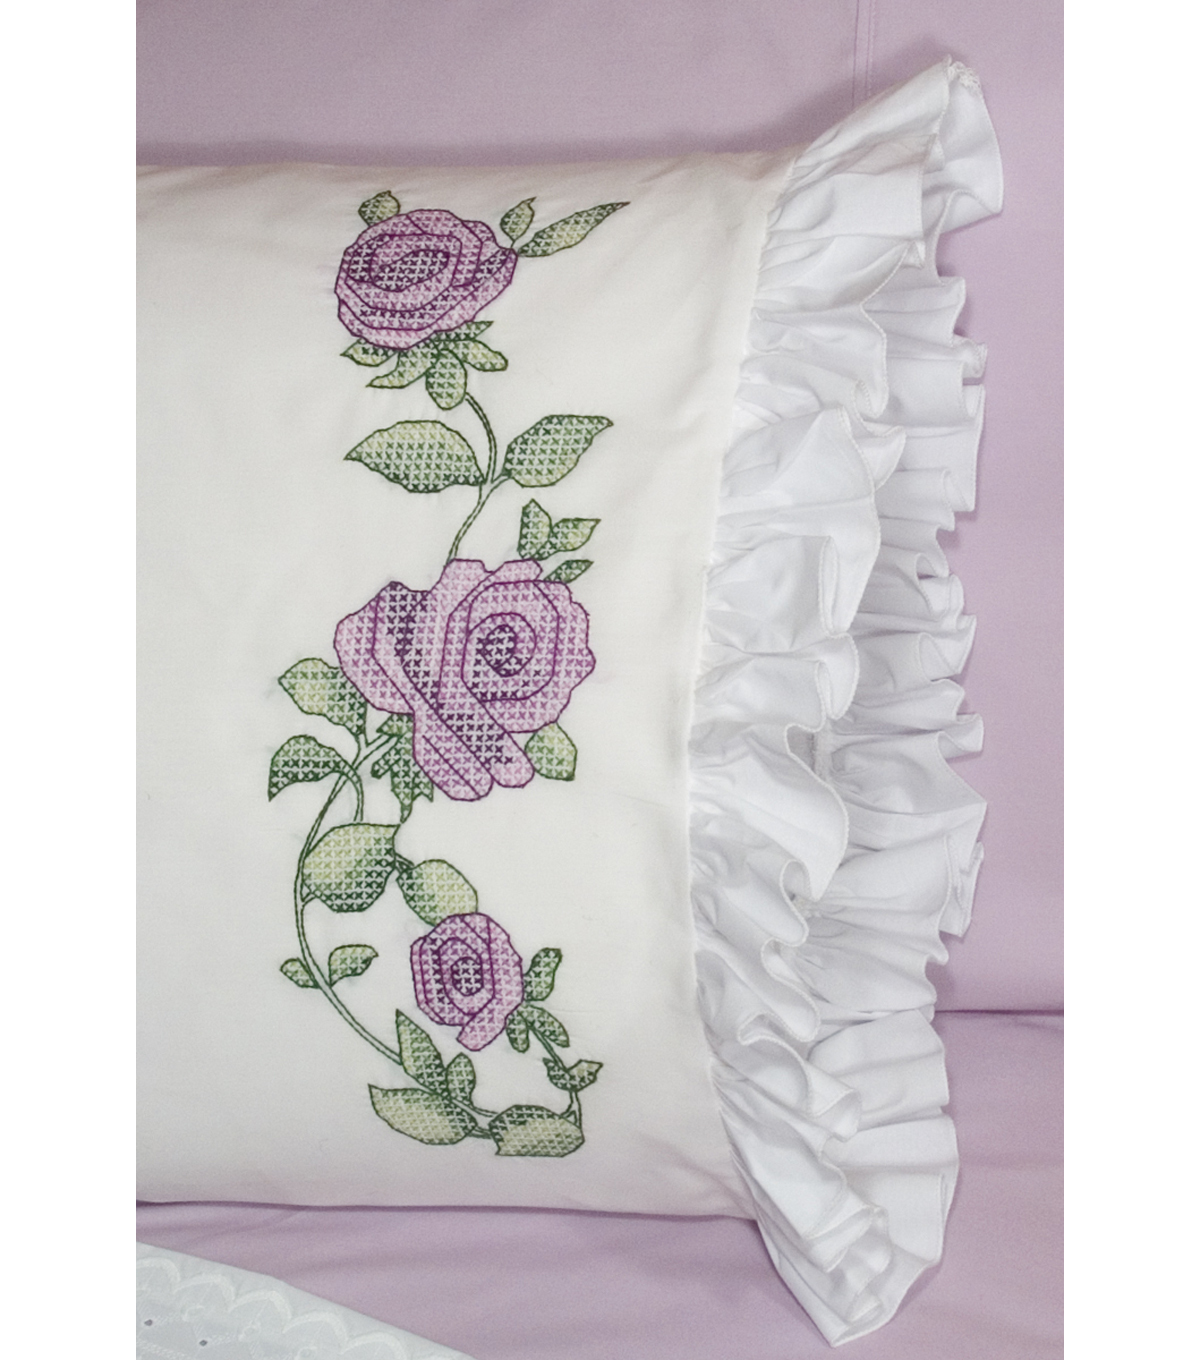 Fairway Stamped Lace Edge Pillowcase Rose Vine